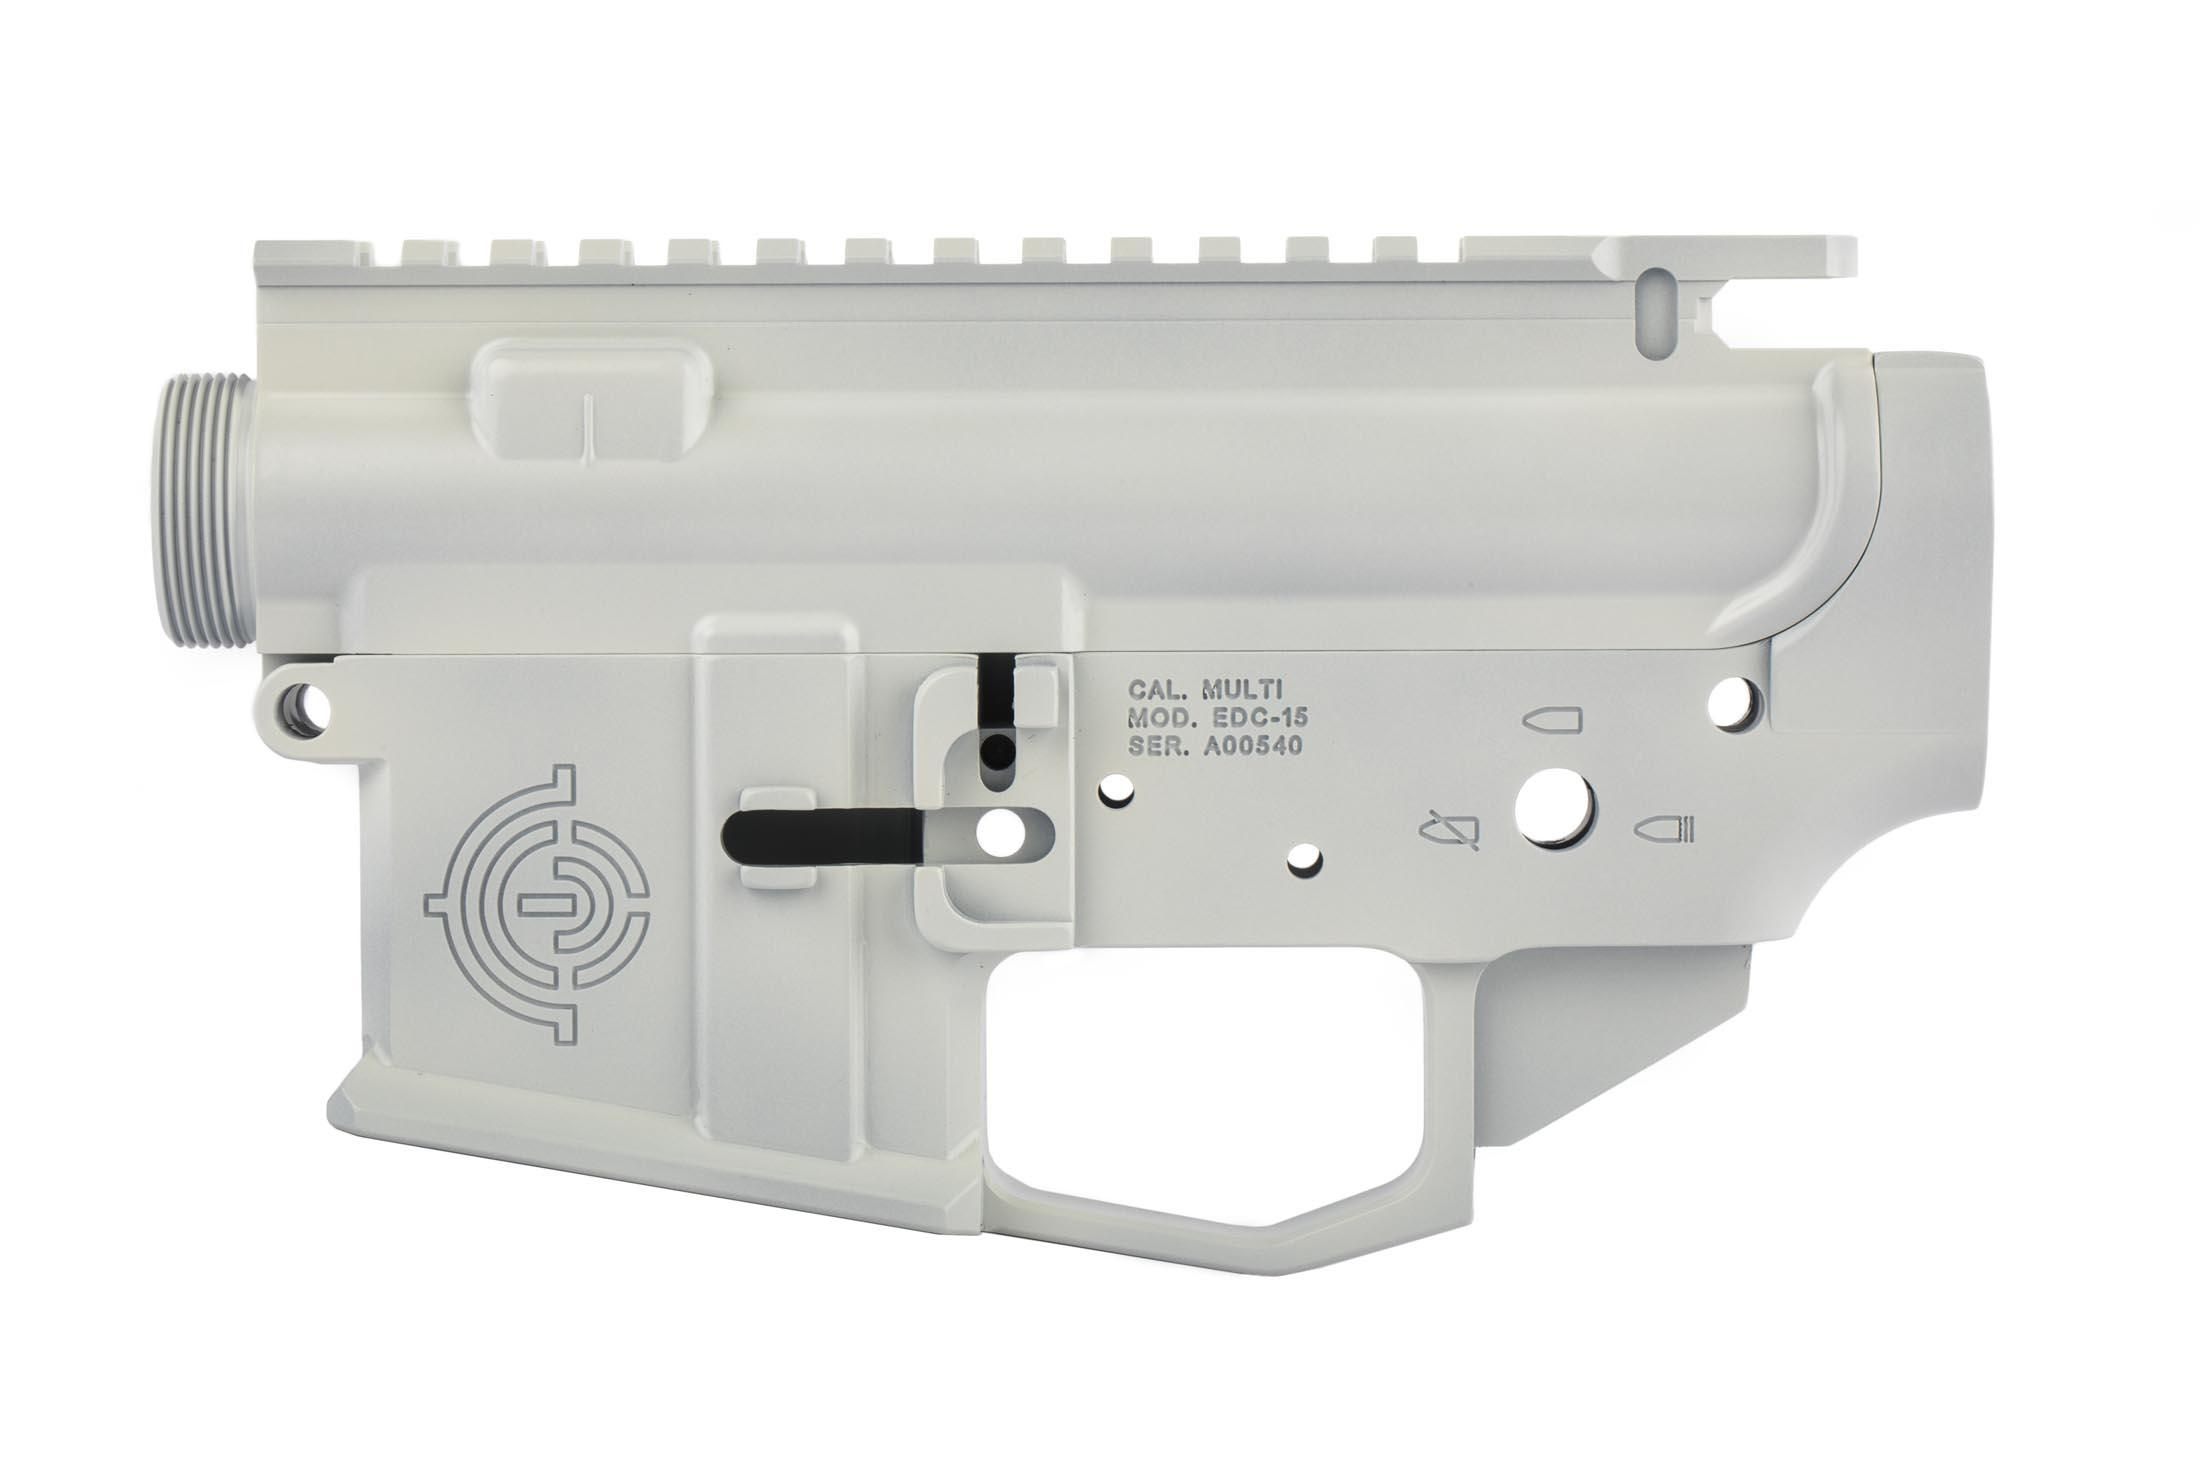 EDC cut AR-15 receiver set from EDC Tactical with White finish has an integral winterized trigger guard compatible with gloves.